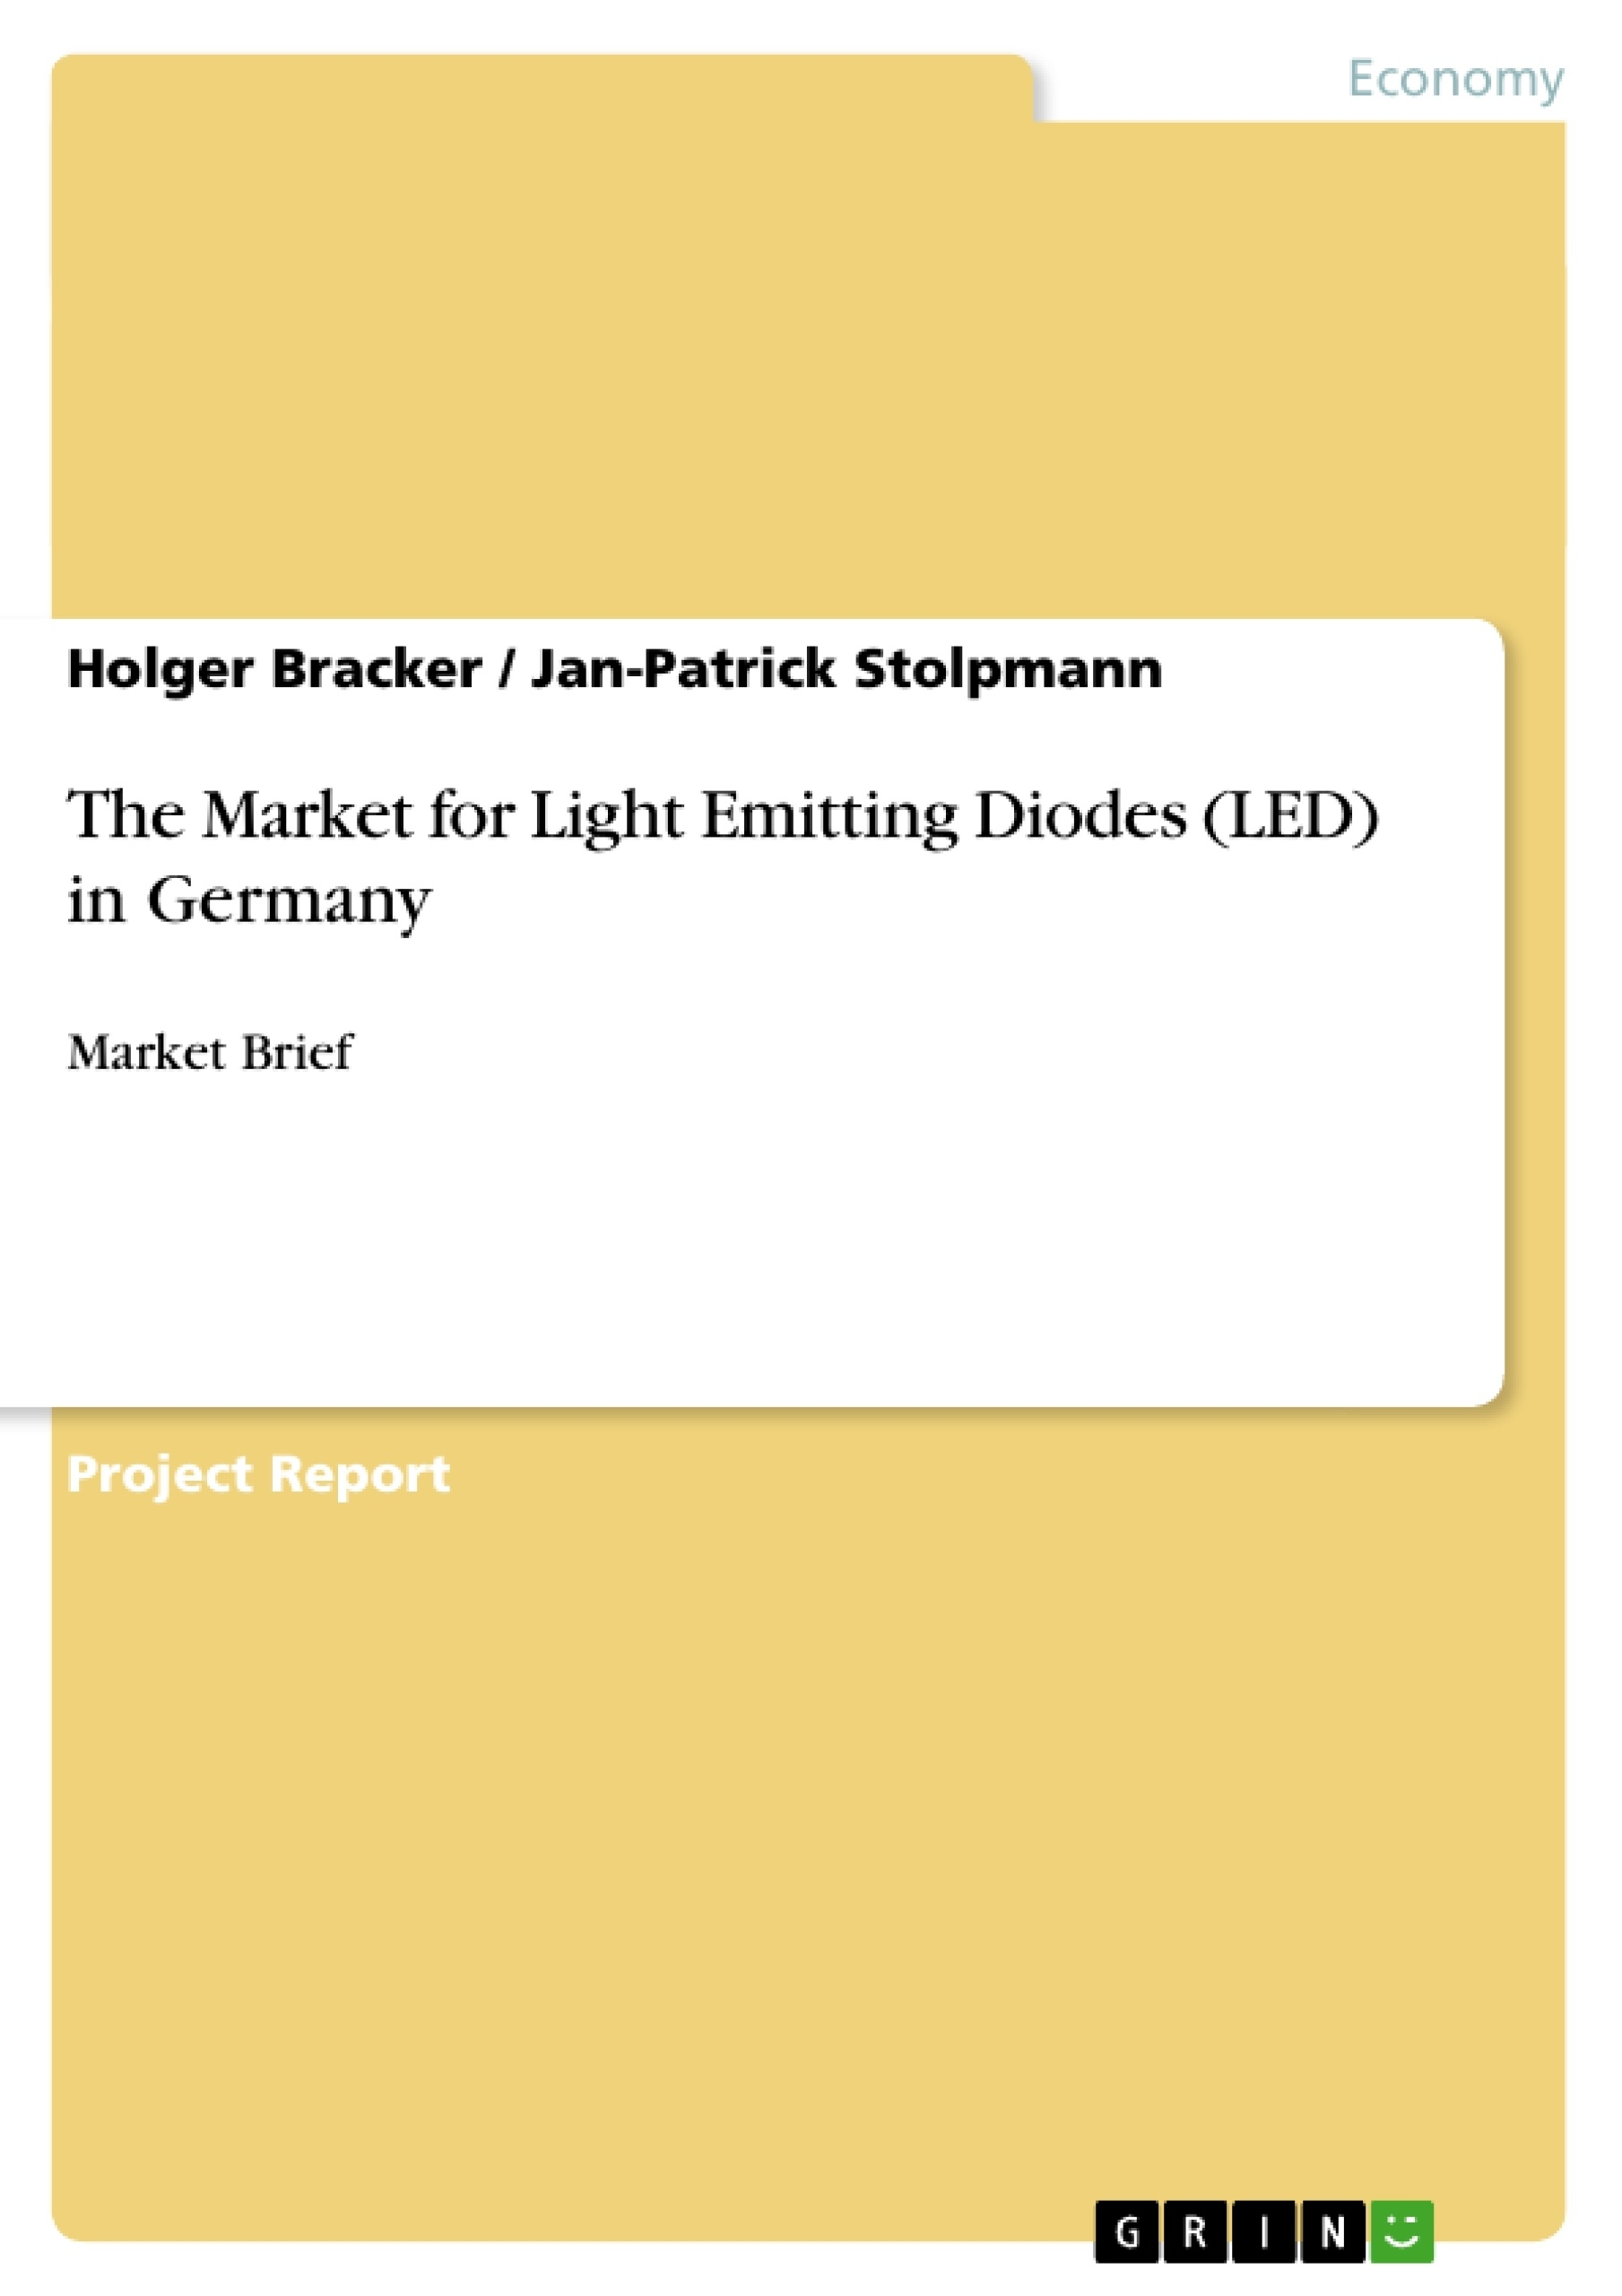 Title: The Market for Light Emitting Diodes (LED) in Germany